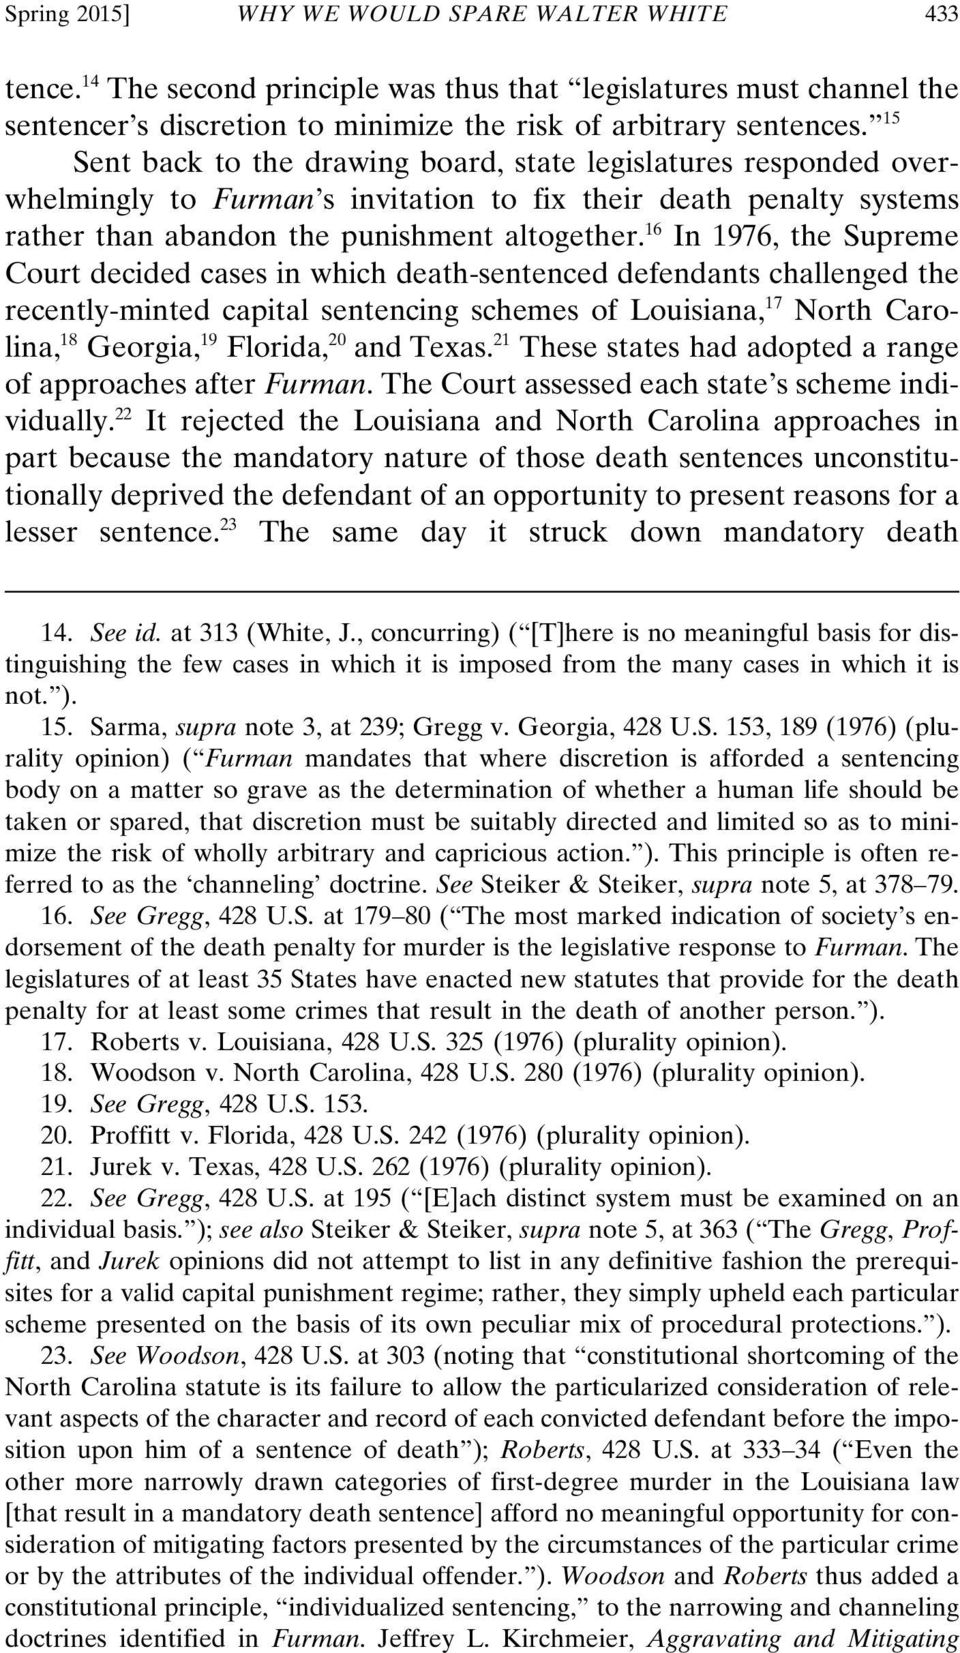 16 In 1976, the Supreme Court decided cases in which death-sentenced defendants challenged the recently-minted capital sentencing schemes of Louisiana, 17 North Carolina, 18 Georgia, 19 Florida, 20